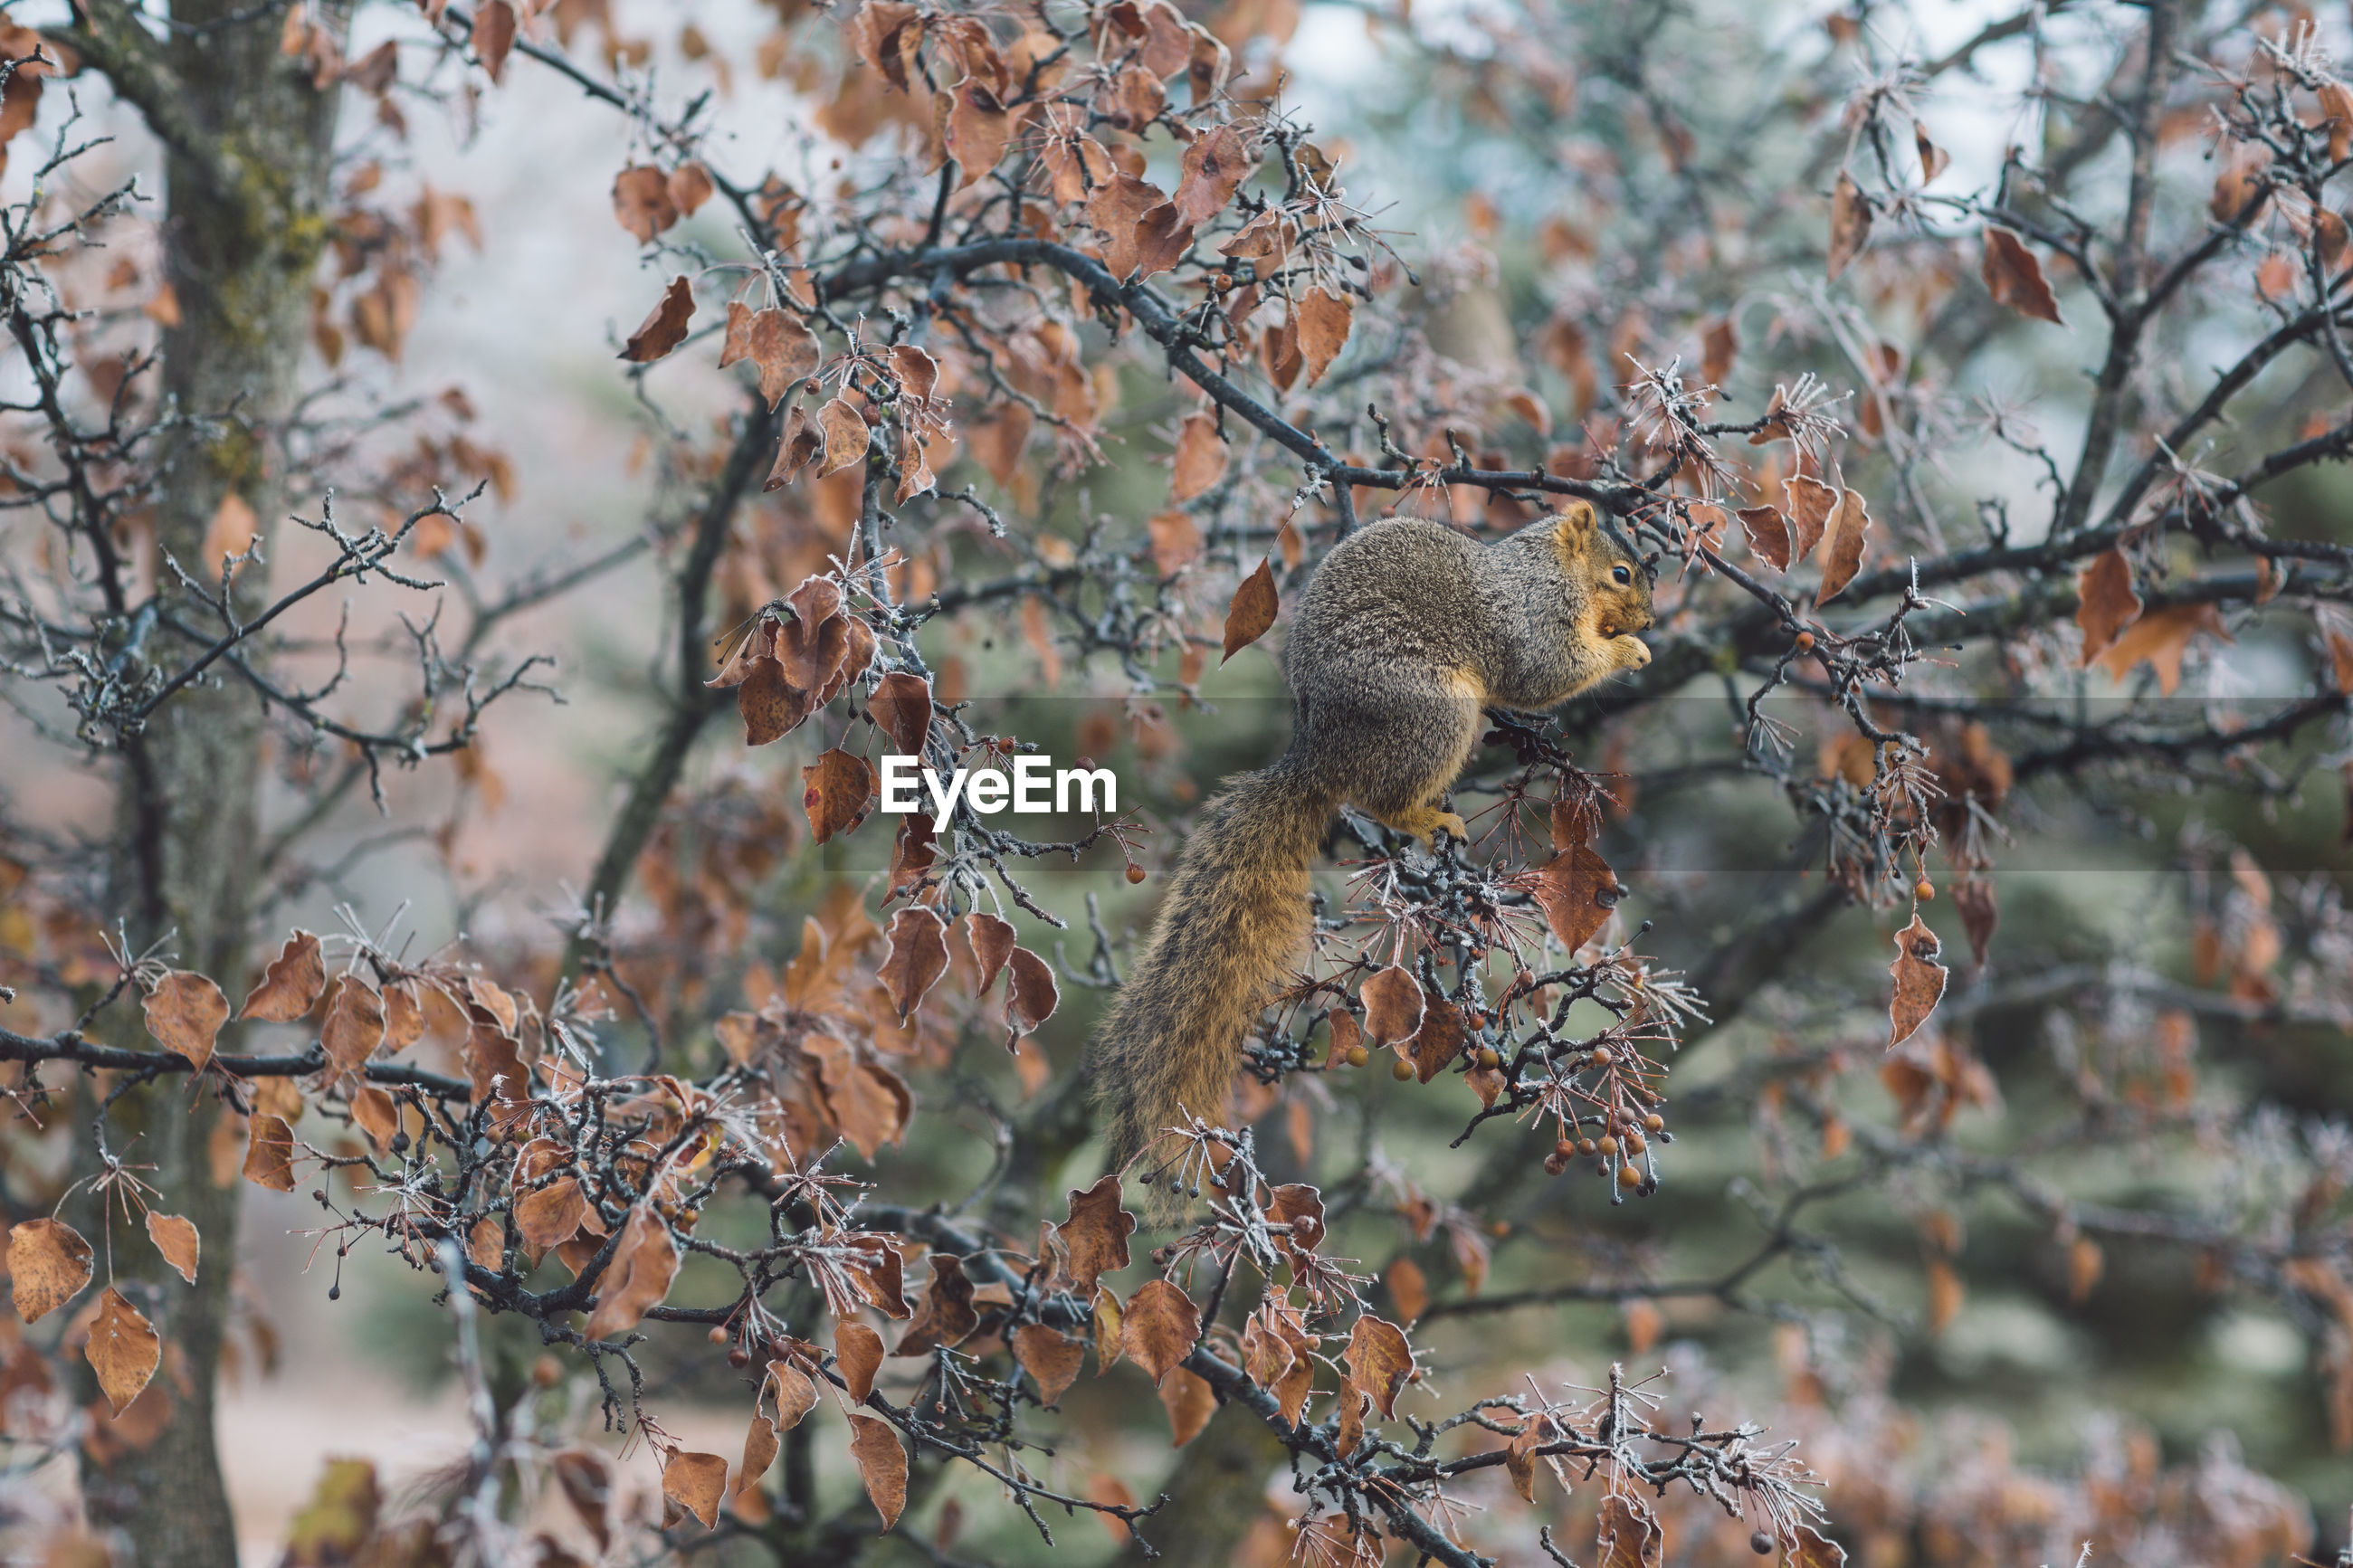 View of a squirrel in a tree